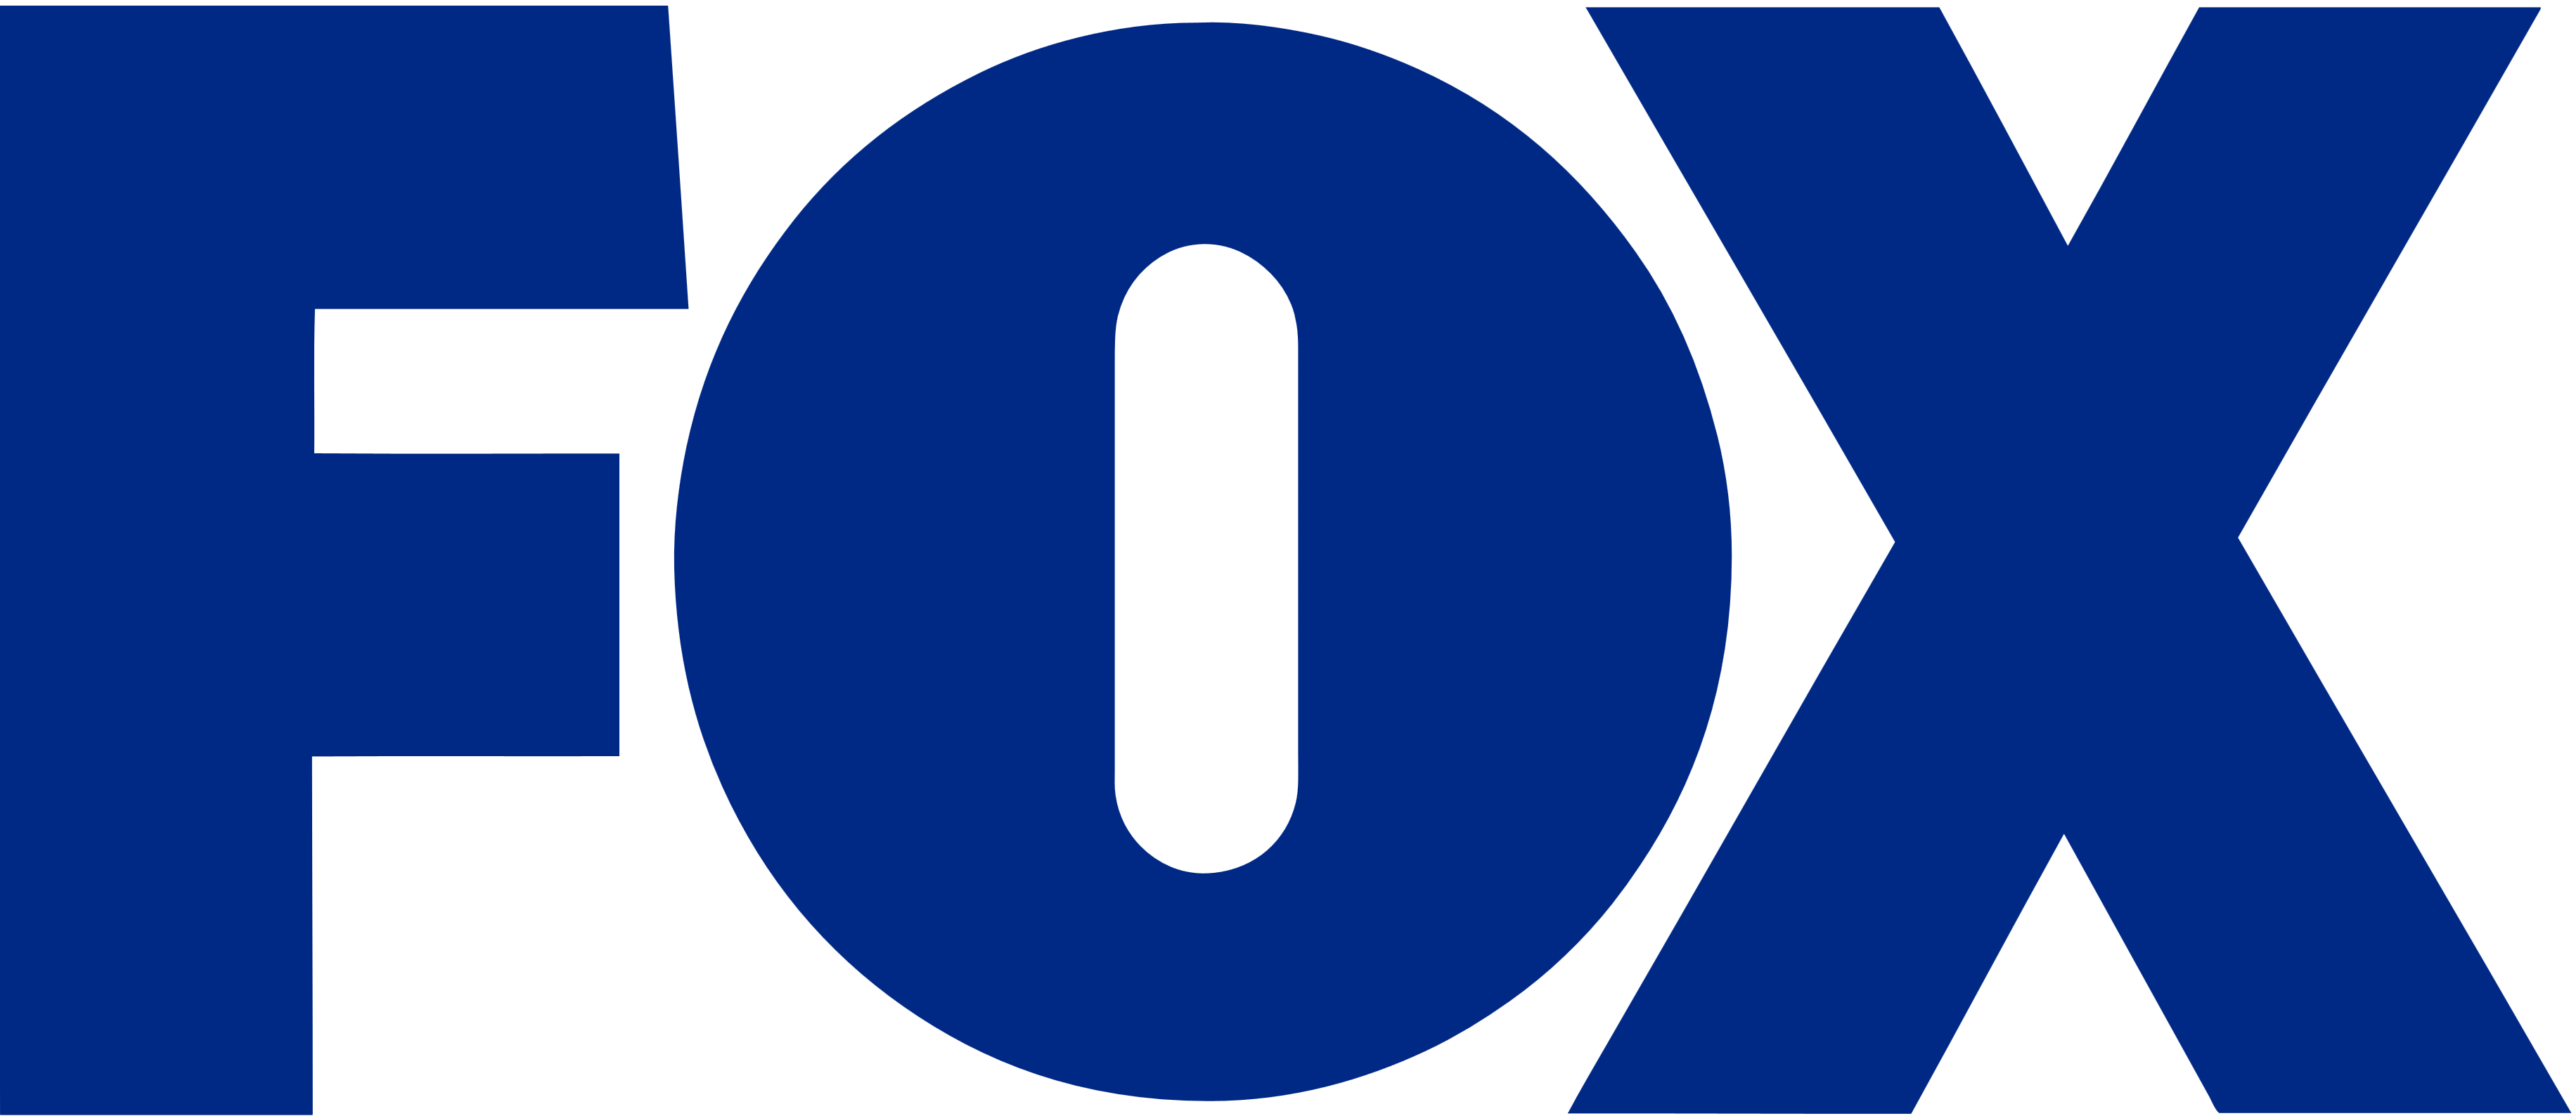 hd-fox-blue-logo-png-6